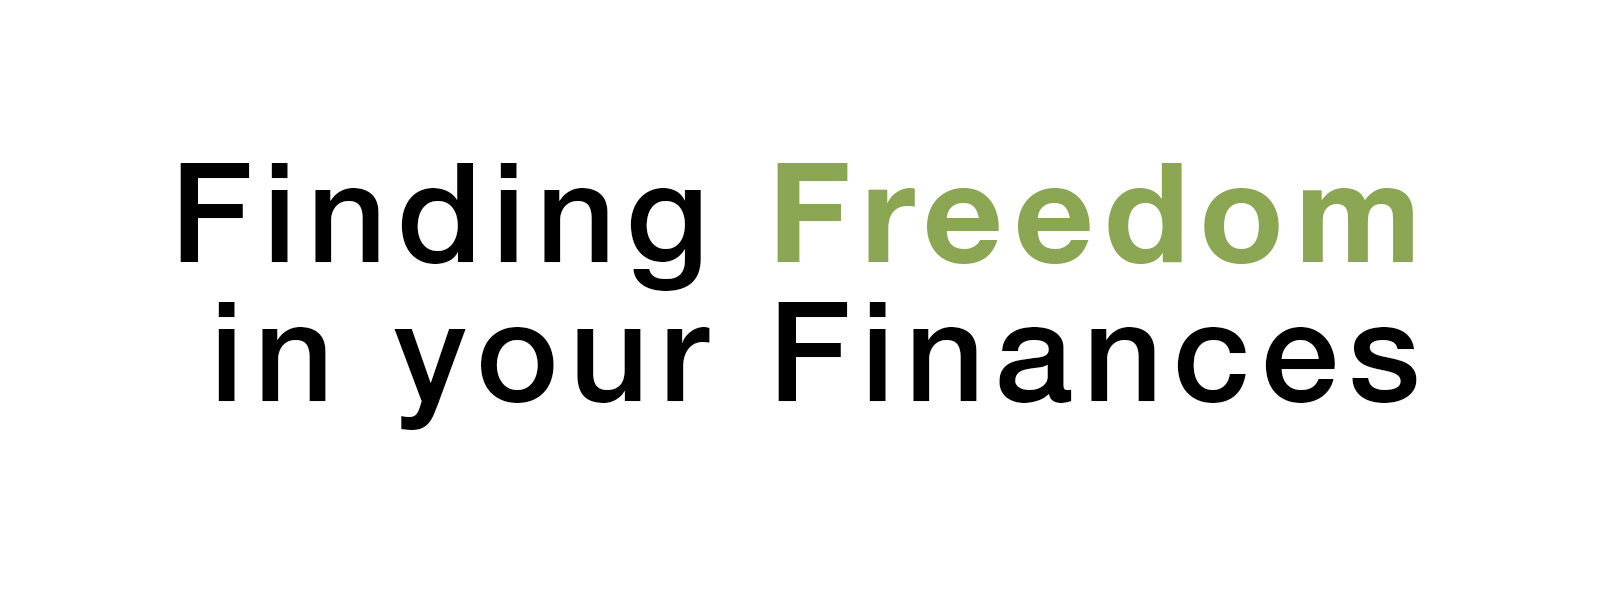 Finding Freedom in Your Finances